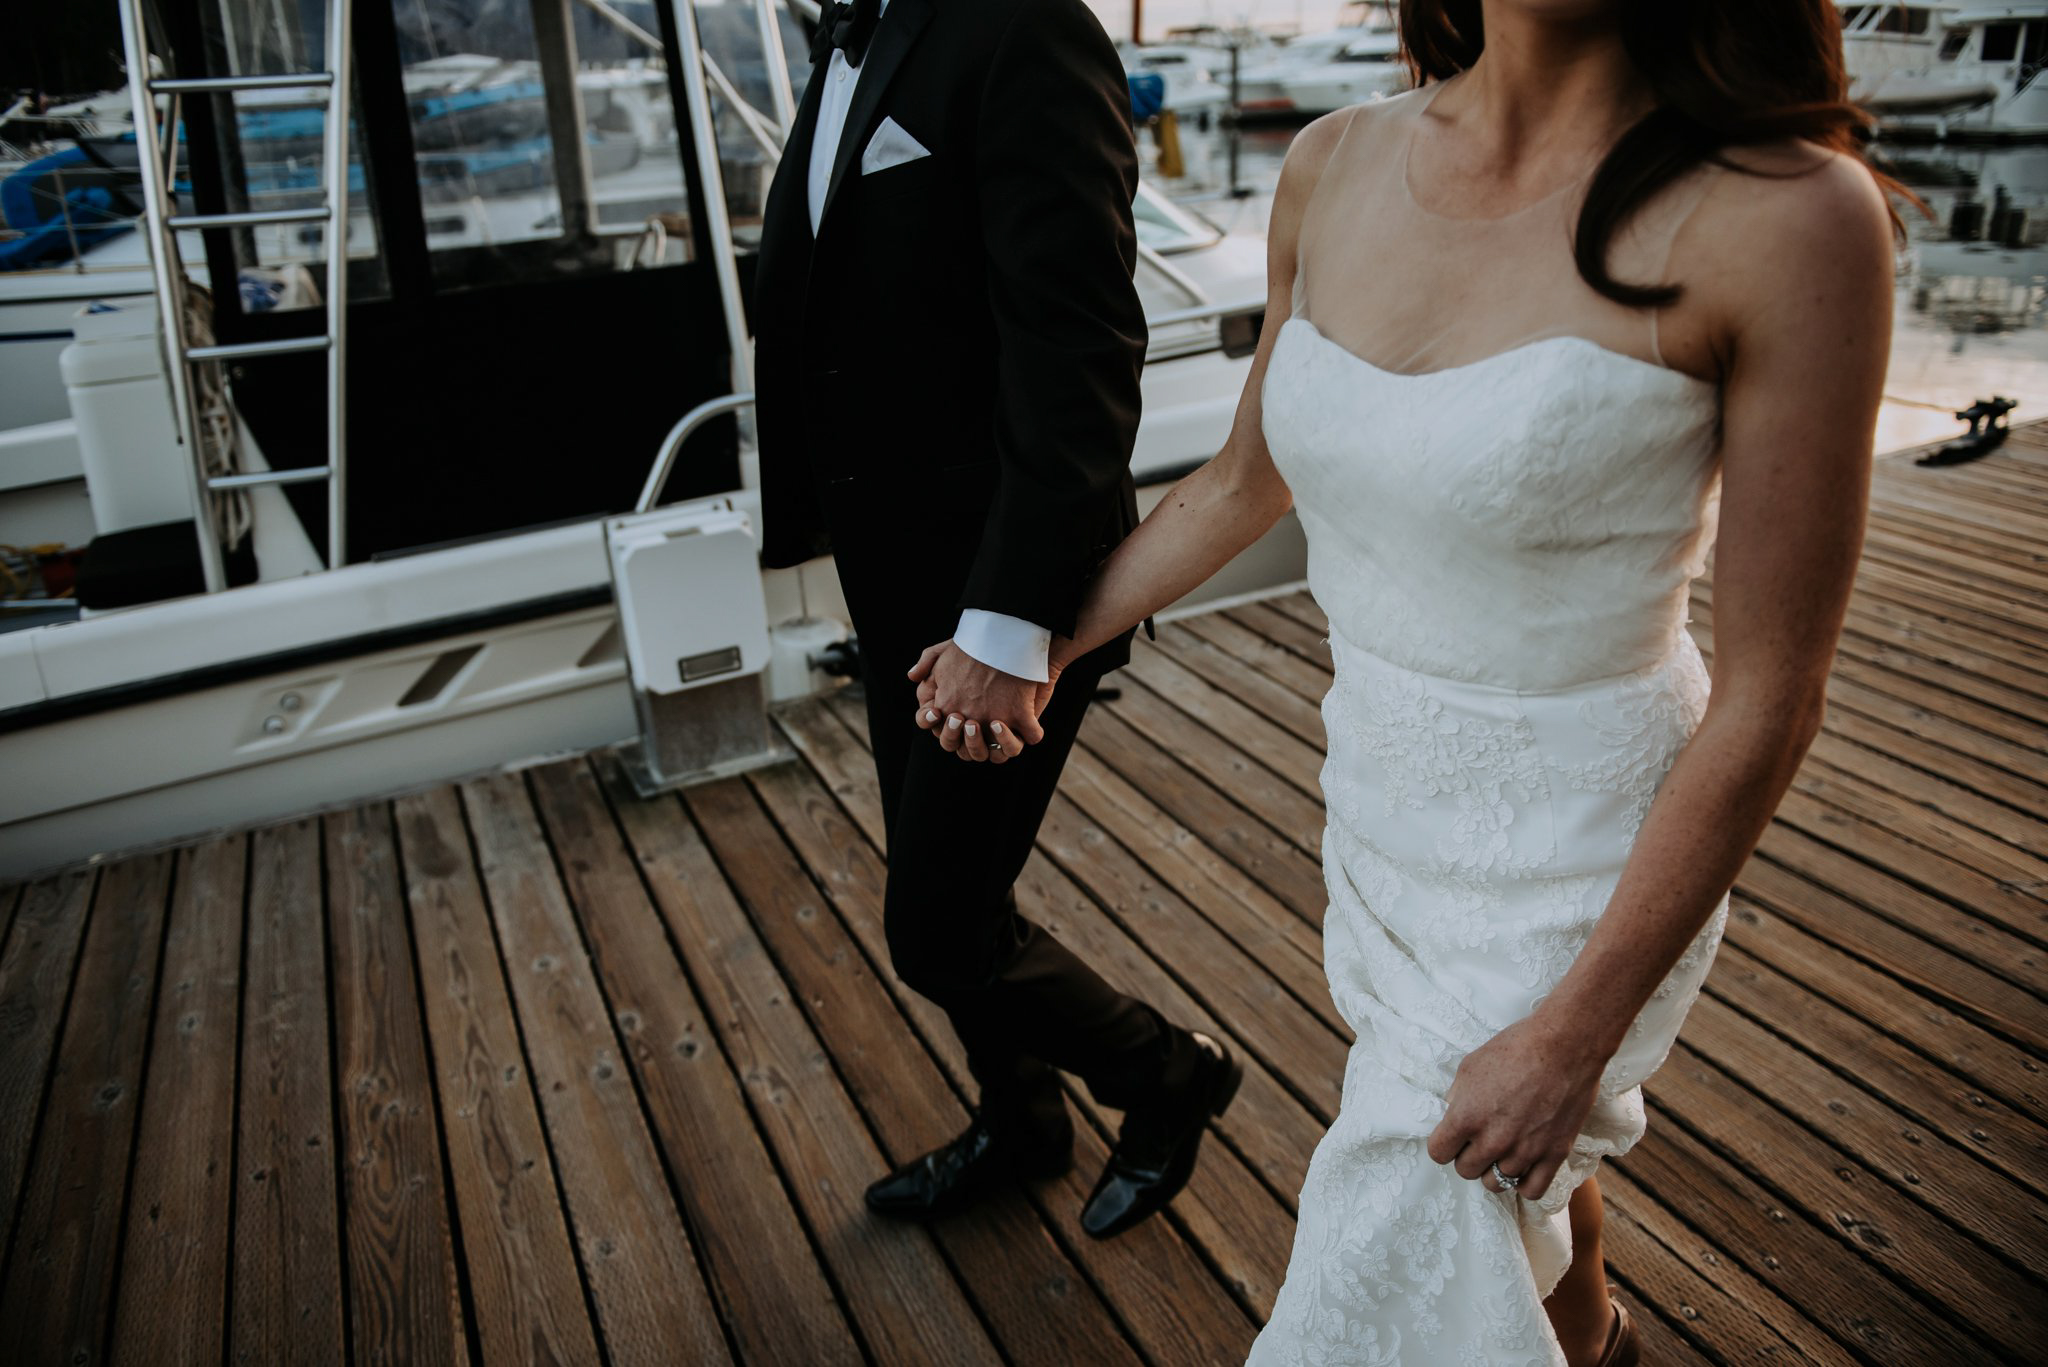 roche-harbor-resort-sand-juan-island-wedding-seattle-wedding-photograher-caitlyn-nikula-154.jpg